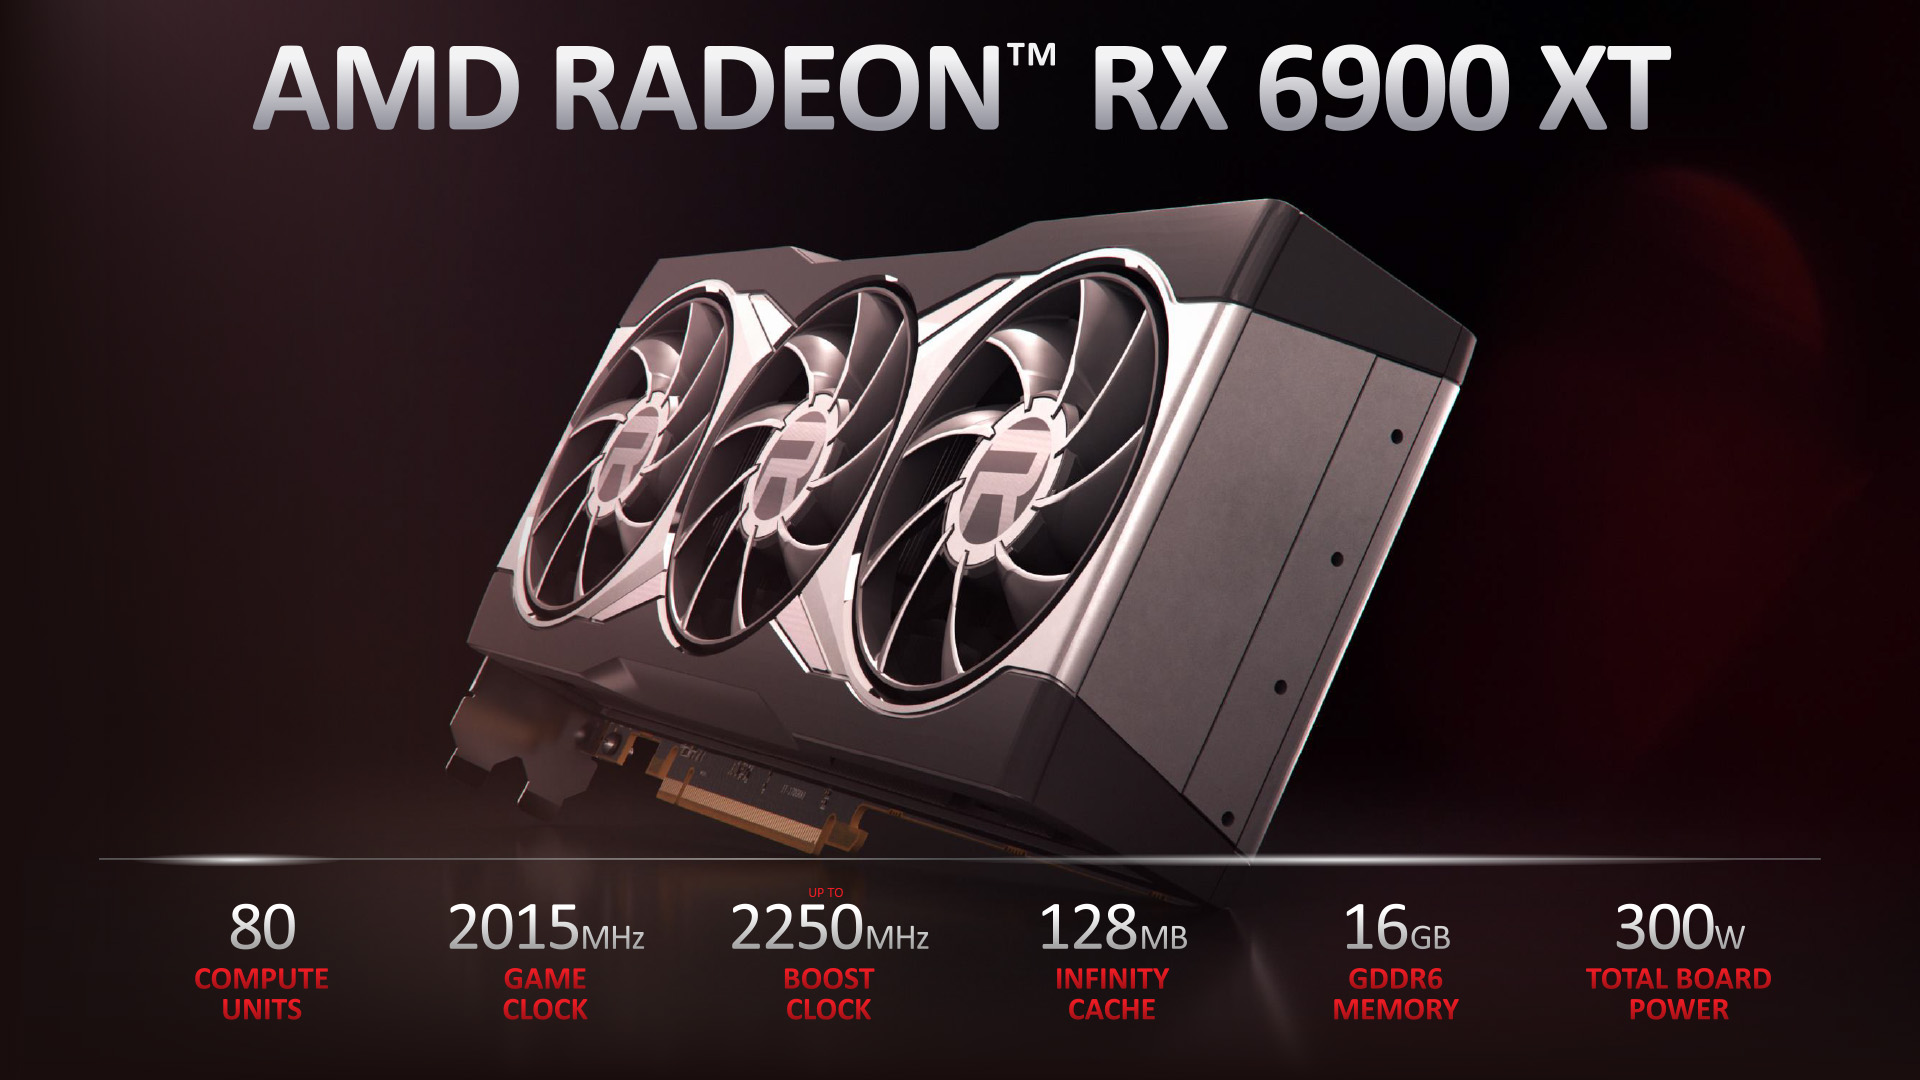 AMD Radeon RX 6900 XT 2 copy